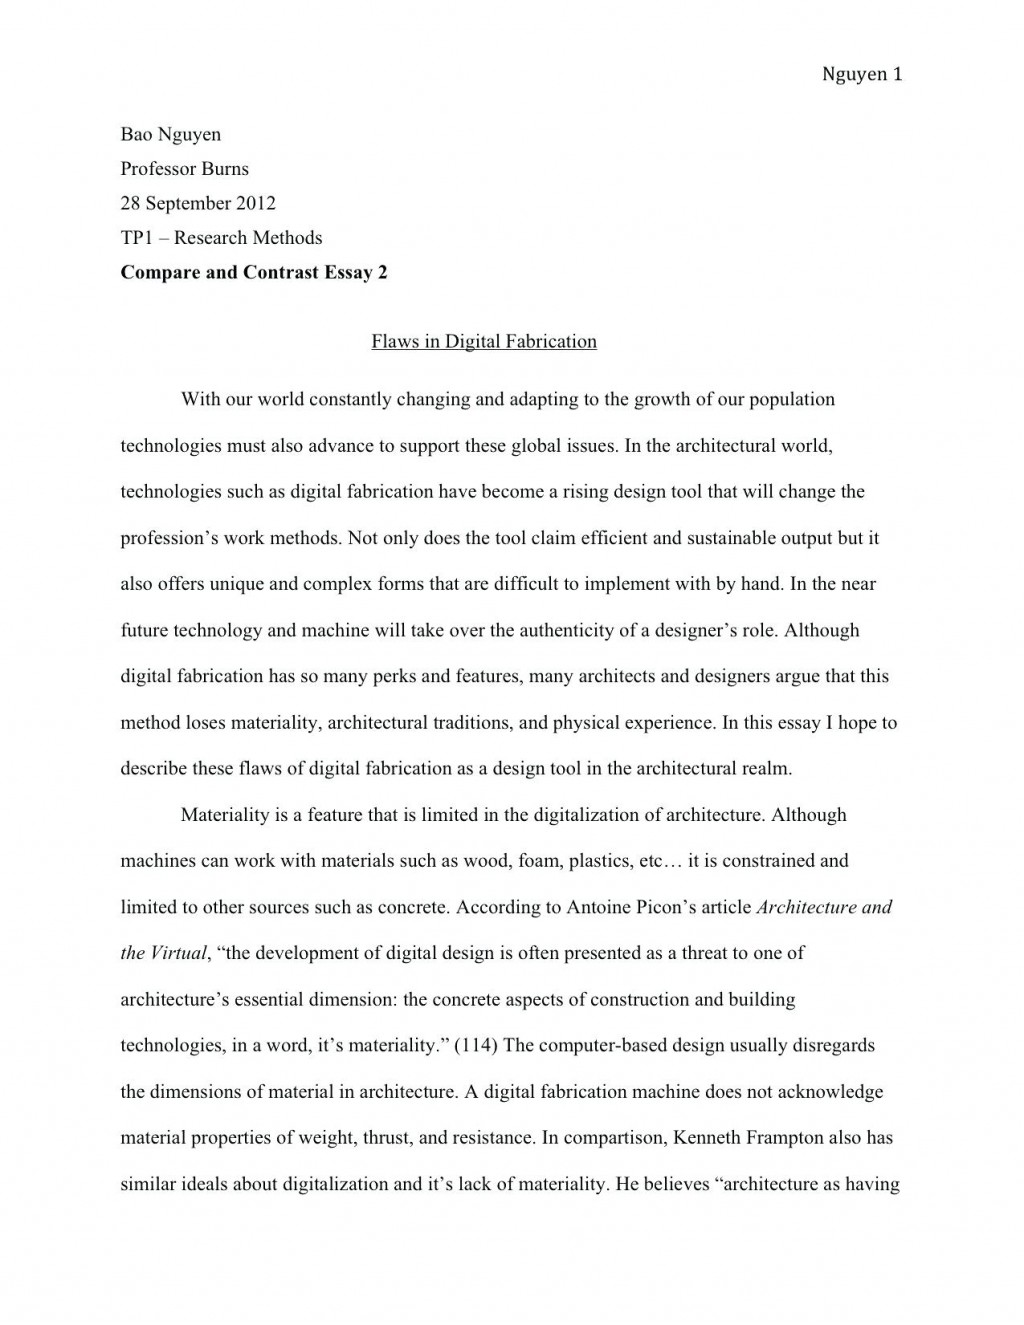 Personal Essay Samples For High School  Thesis Statement Argumentative Essay also Examples Of Argumentative Thesis Statements For Essays Essay Reflection Essay Example Yapisstickenco With Examples  Old English Essay